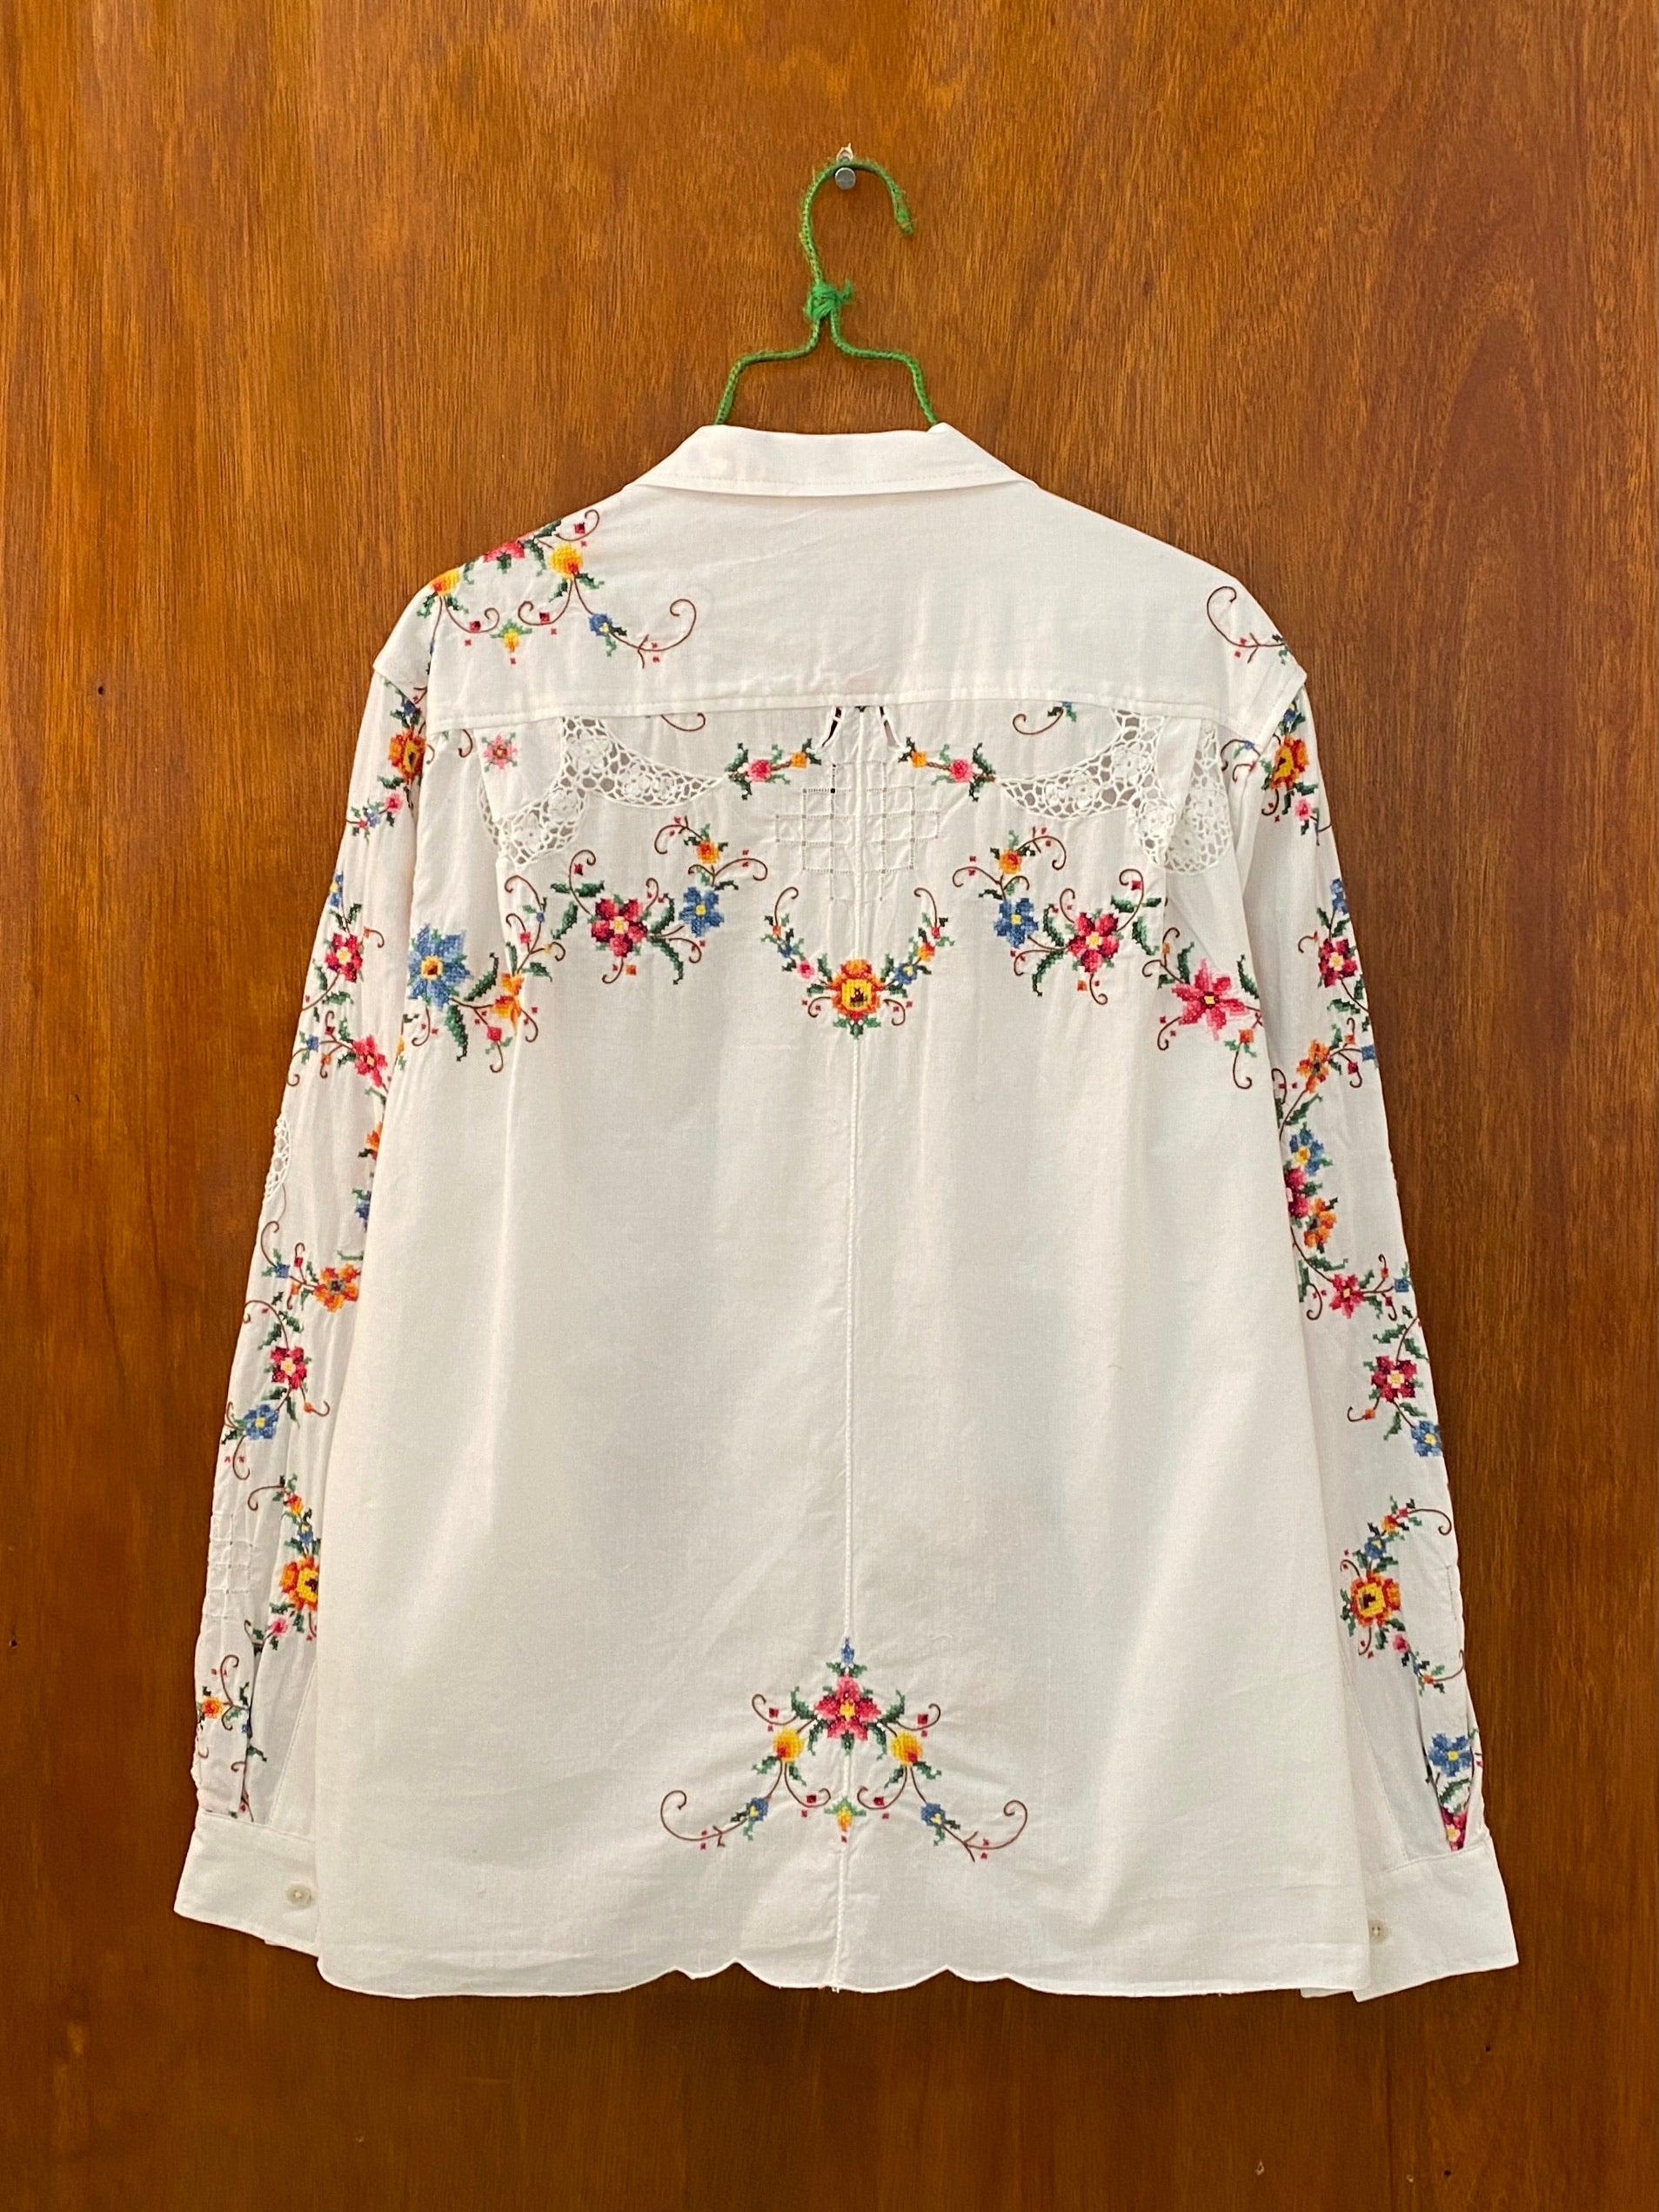 Floral Sleeve Cross-Stitch Shirt - M/L